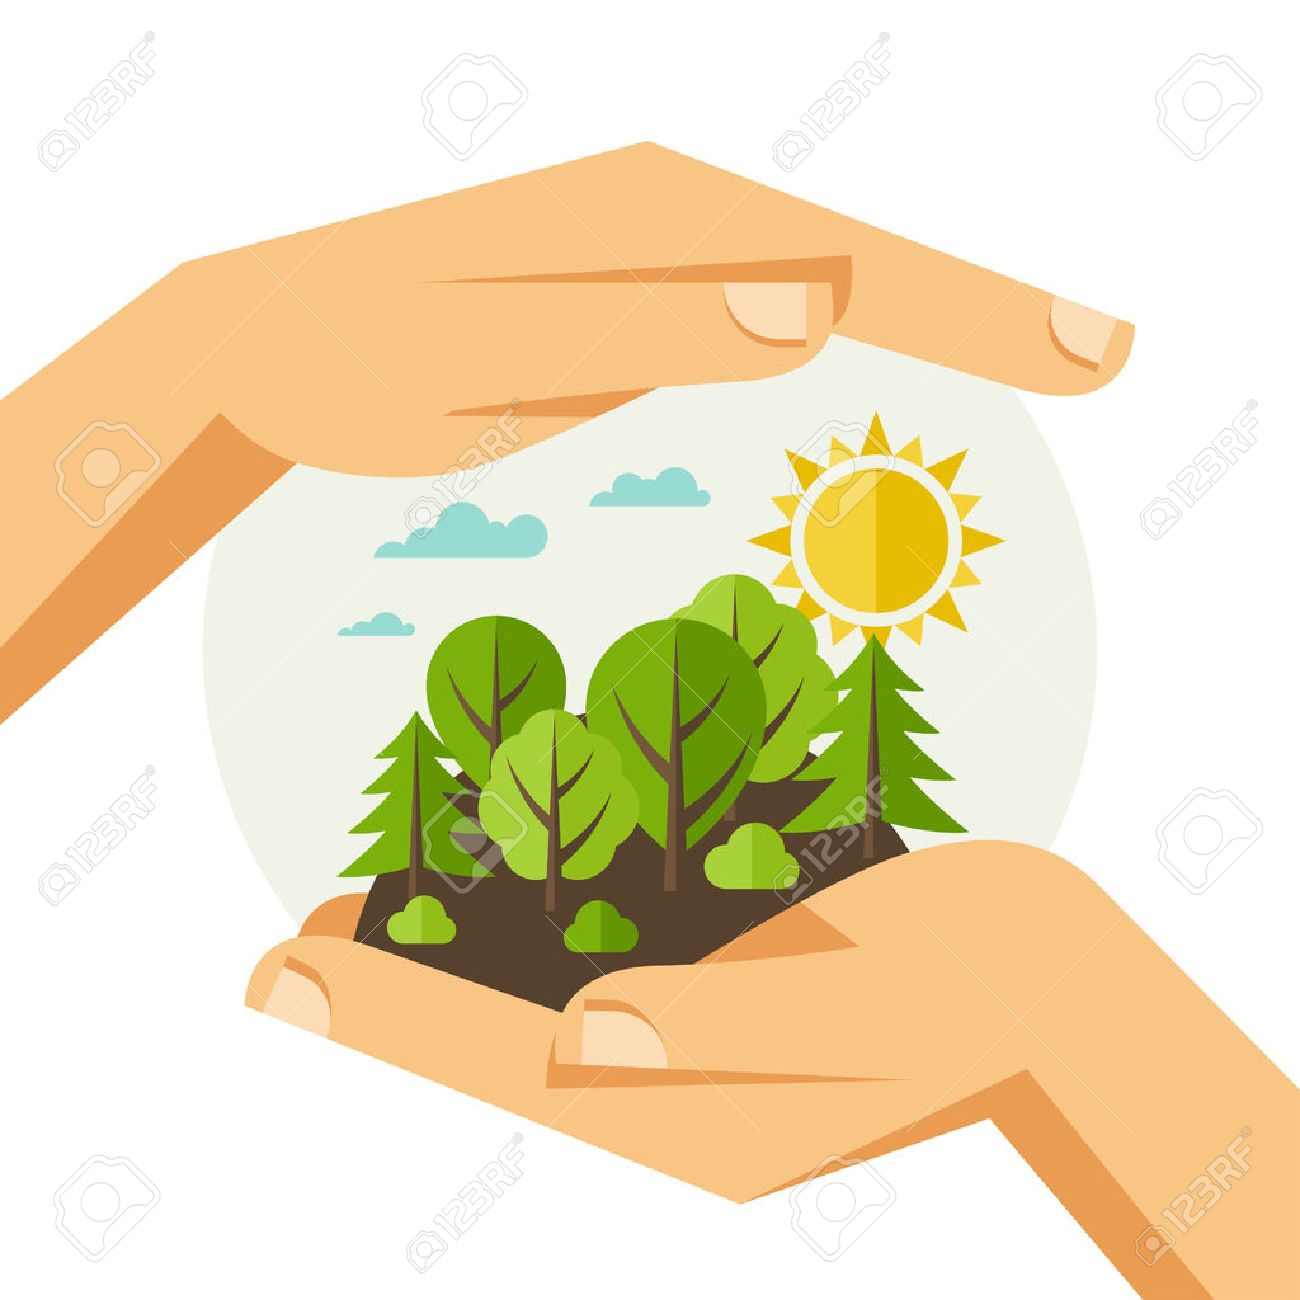 Environmental protection, ecology concept illustration in flat style. - 35135773